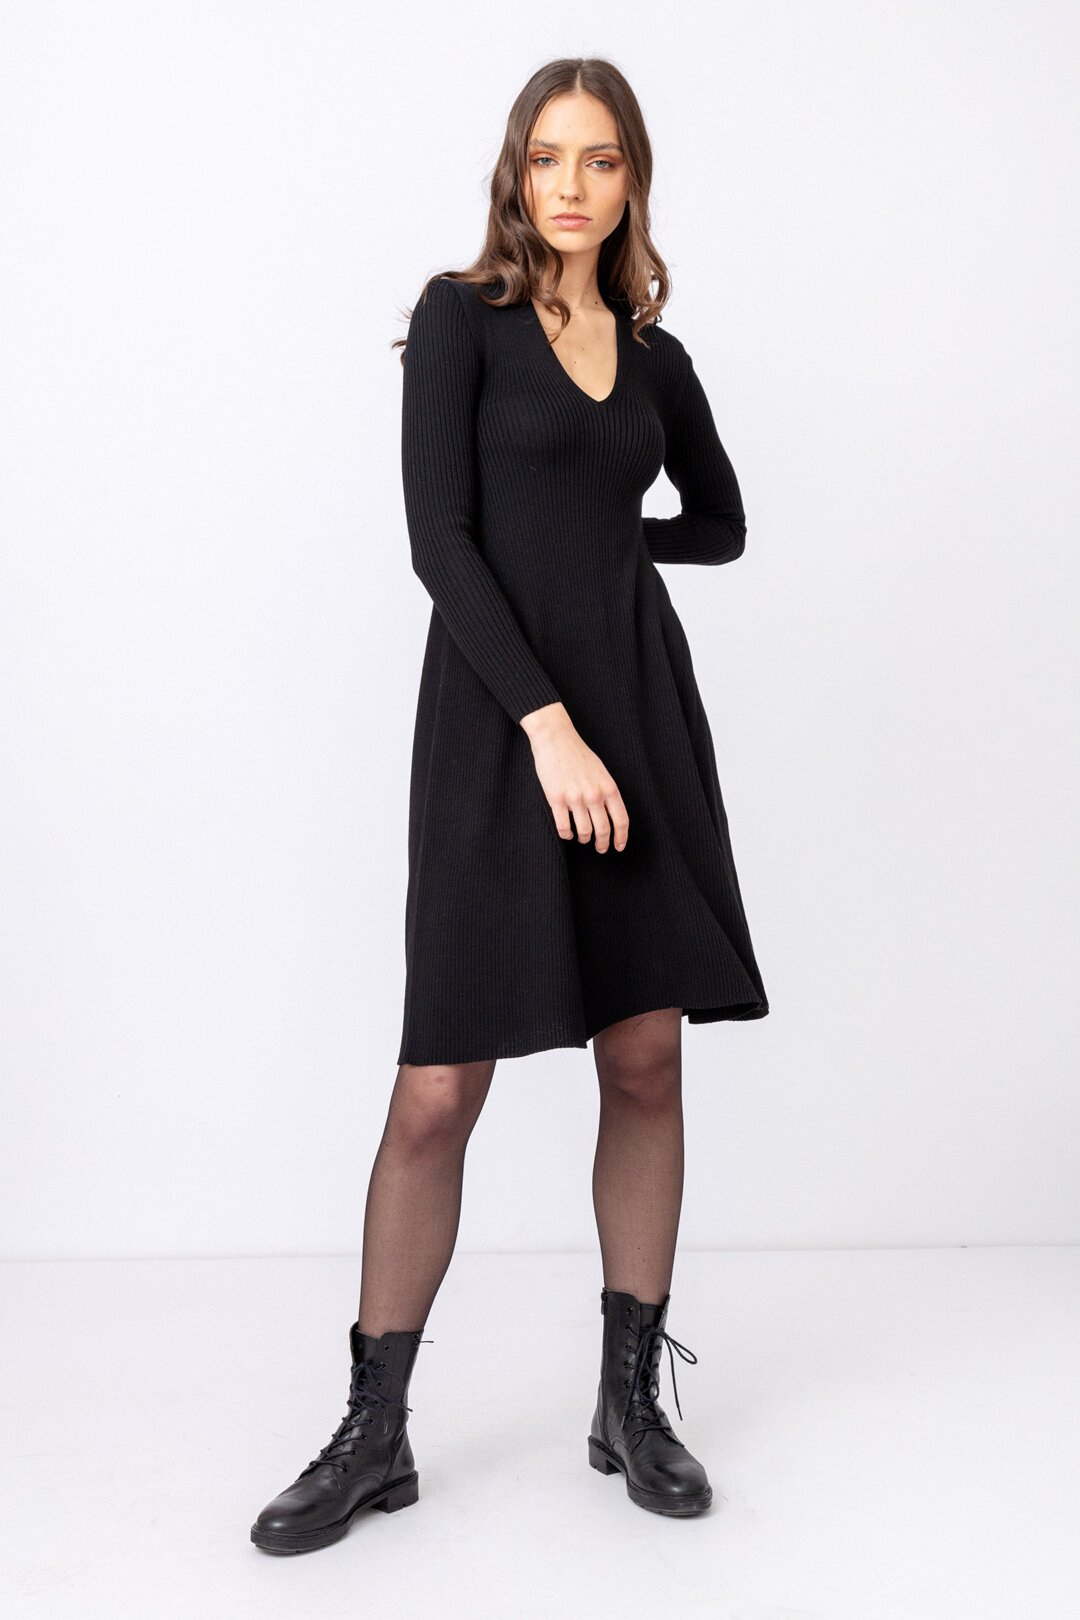 outfit-7c8a1486